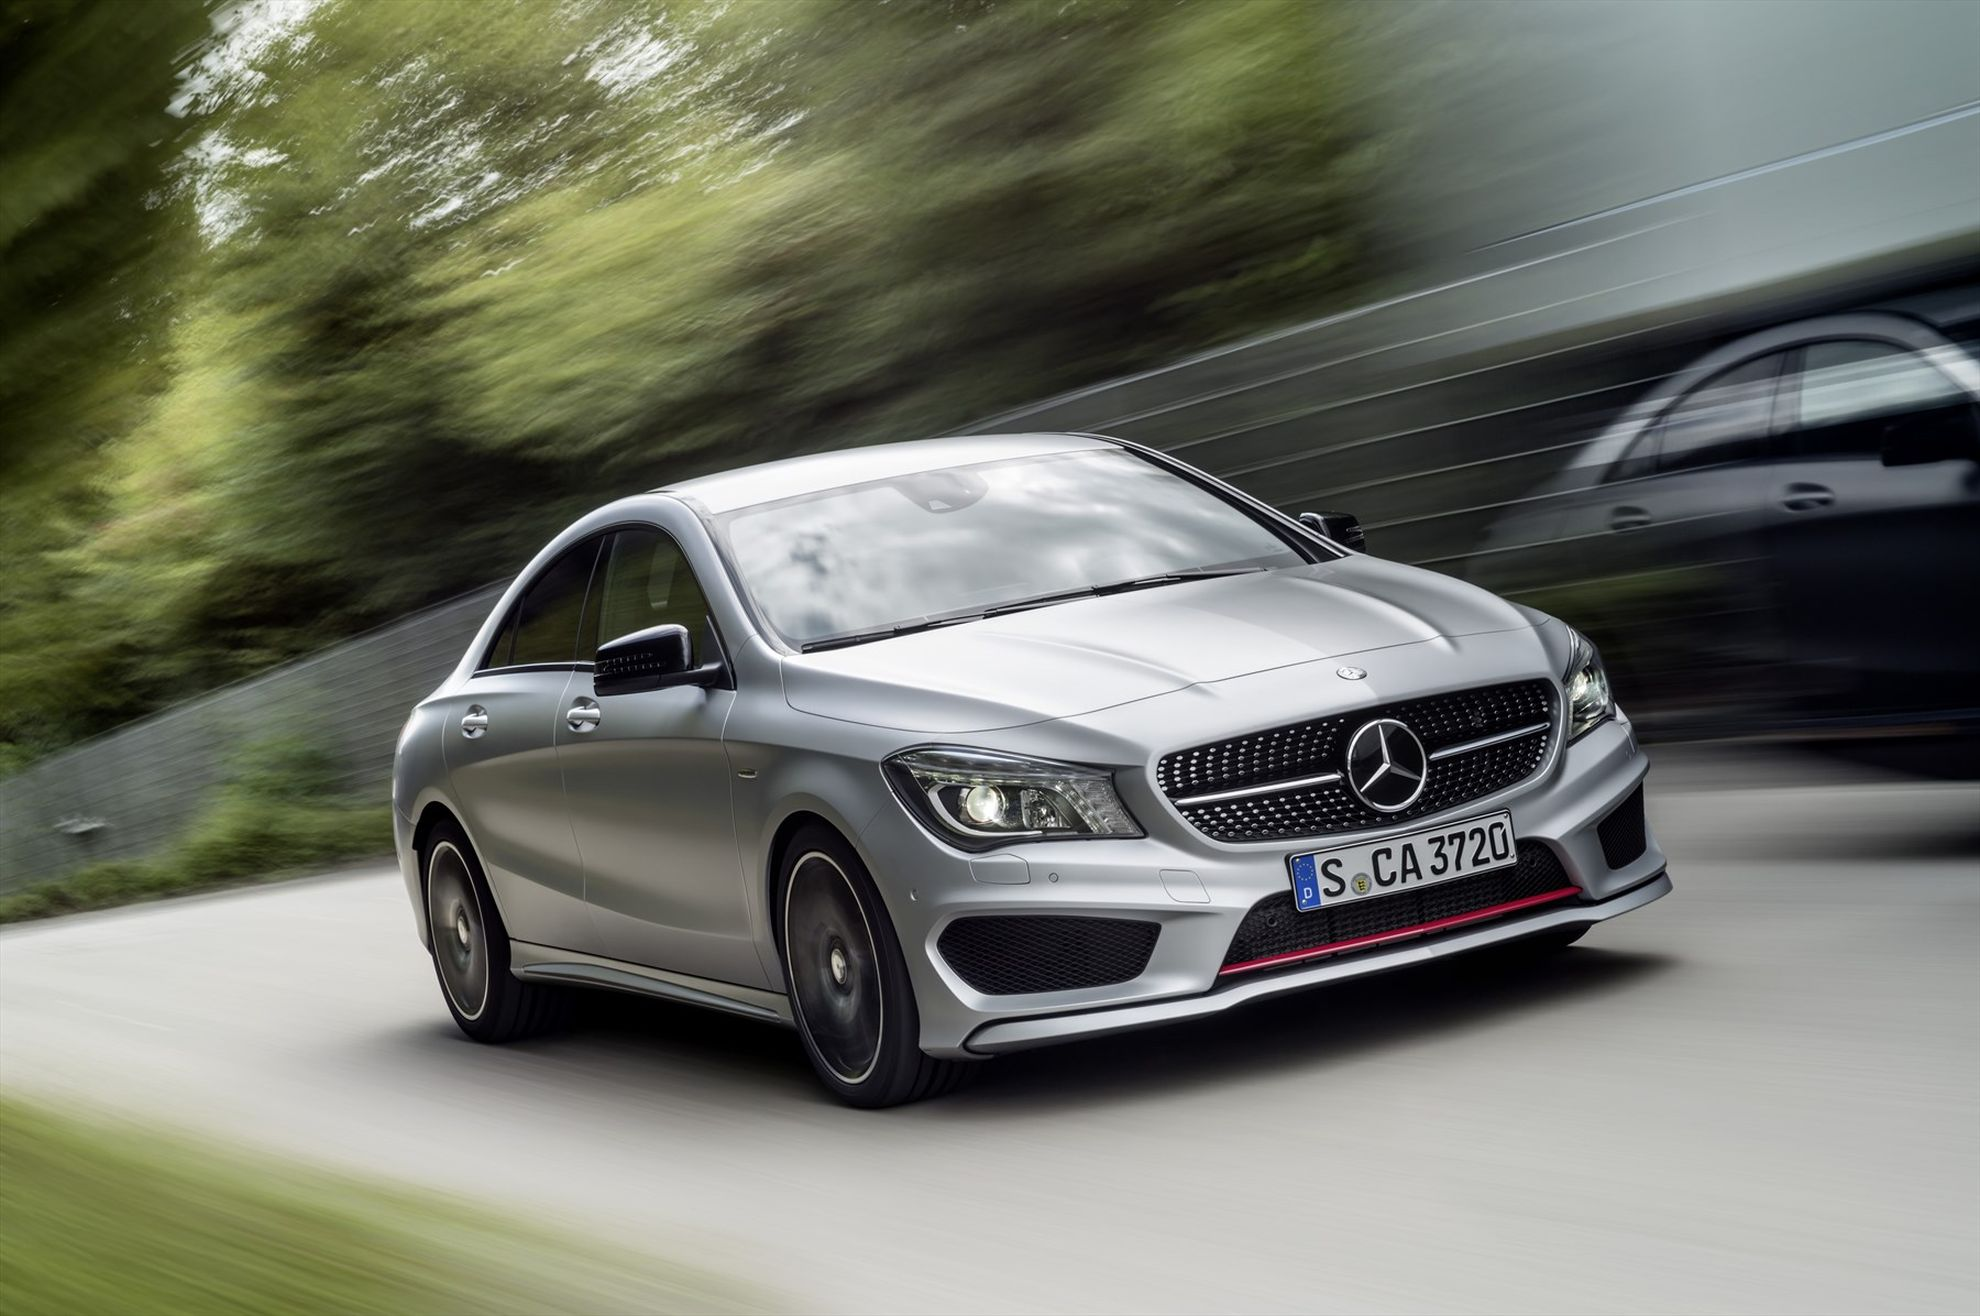 And-the-all-wheel-drive-car-award-goes-to-Mercedes-Benz-cla